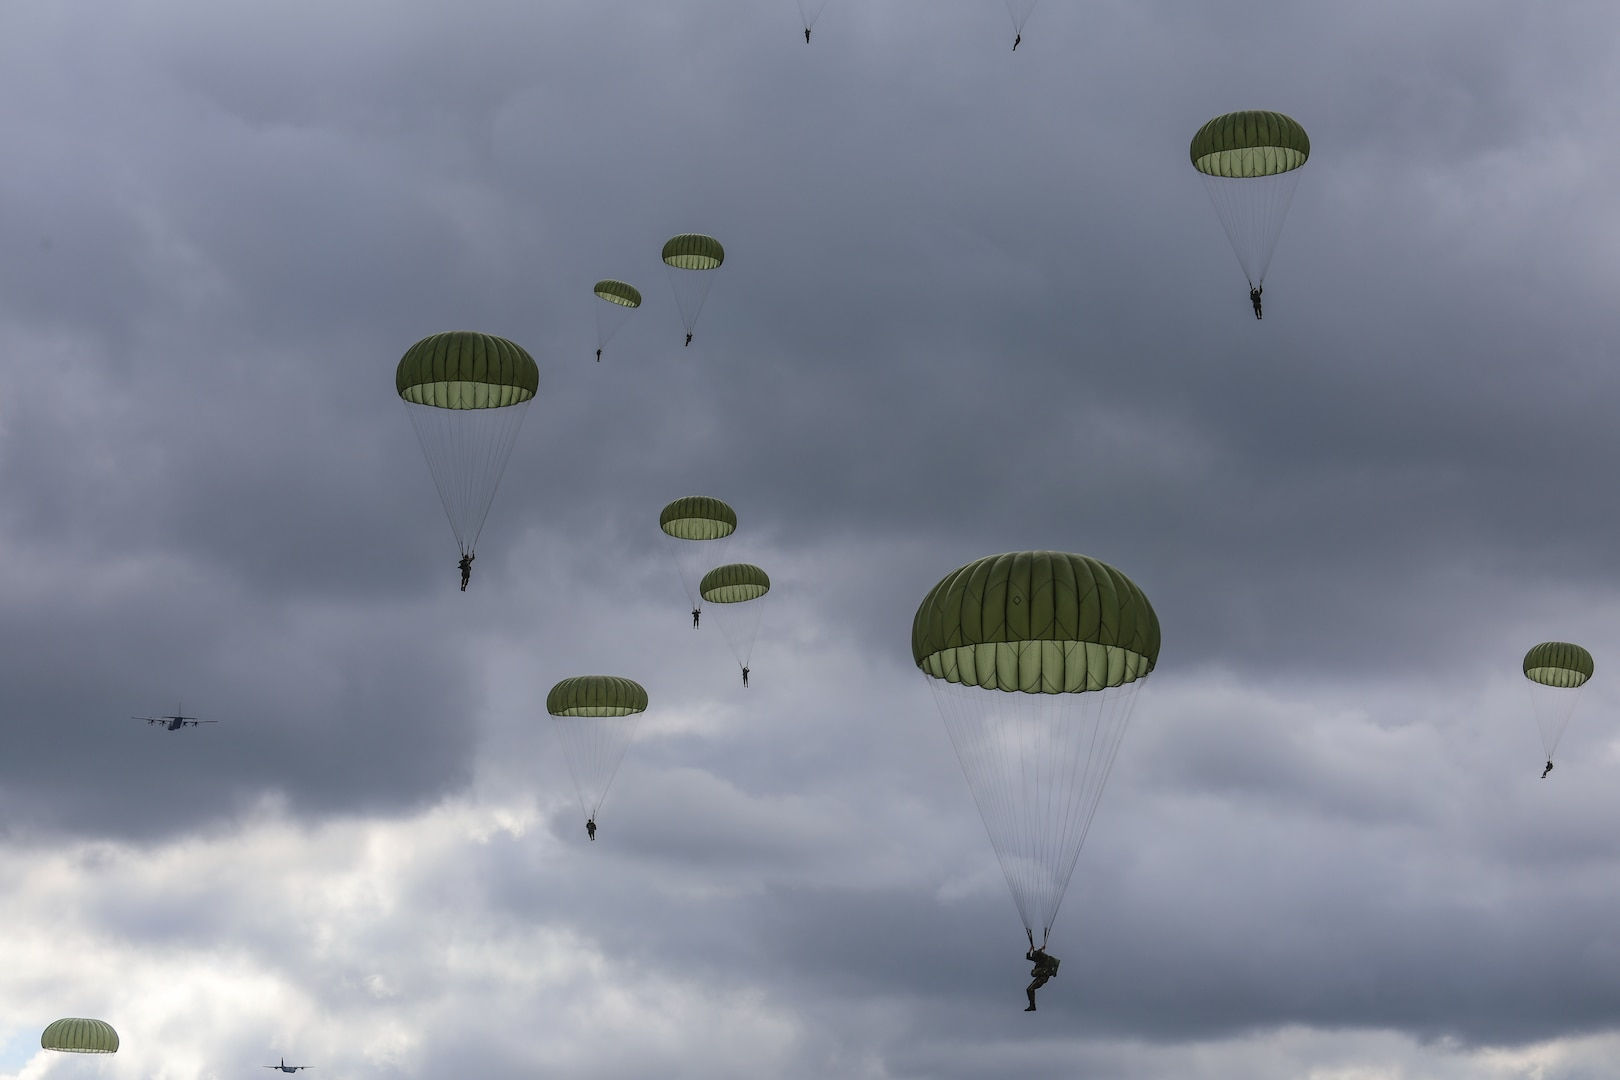 Participants from 12 NATO allied forces and local citizens paid homage to the 77th Anniversary of Operation Market Garden by gathering at a series of drop zones across the Netherlands and Belgium to observe one thousand Soldiers parachuting from U.S Air Force C-130s and allied force aircrafts during Falcon Leap.